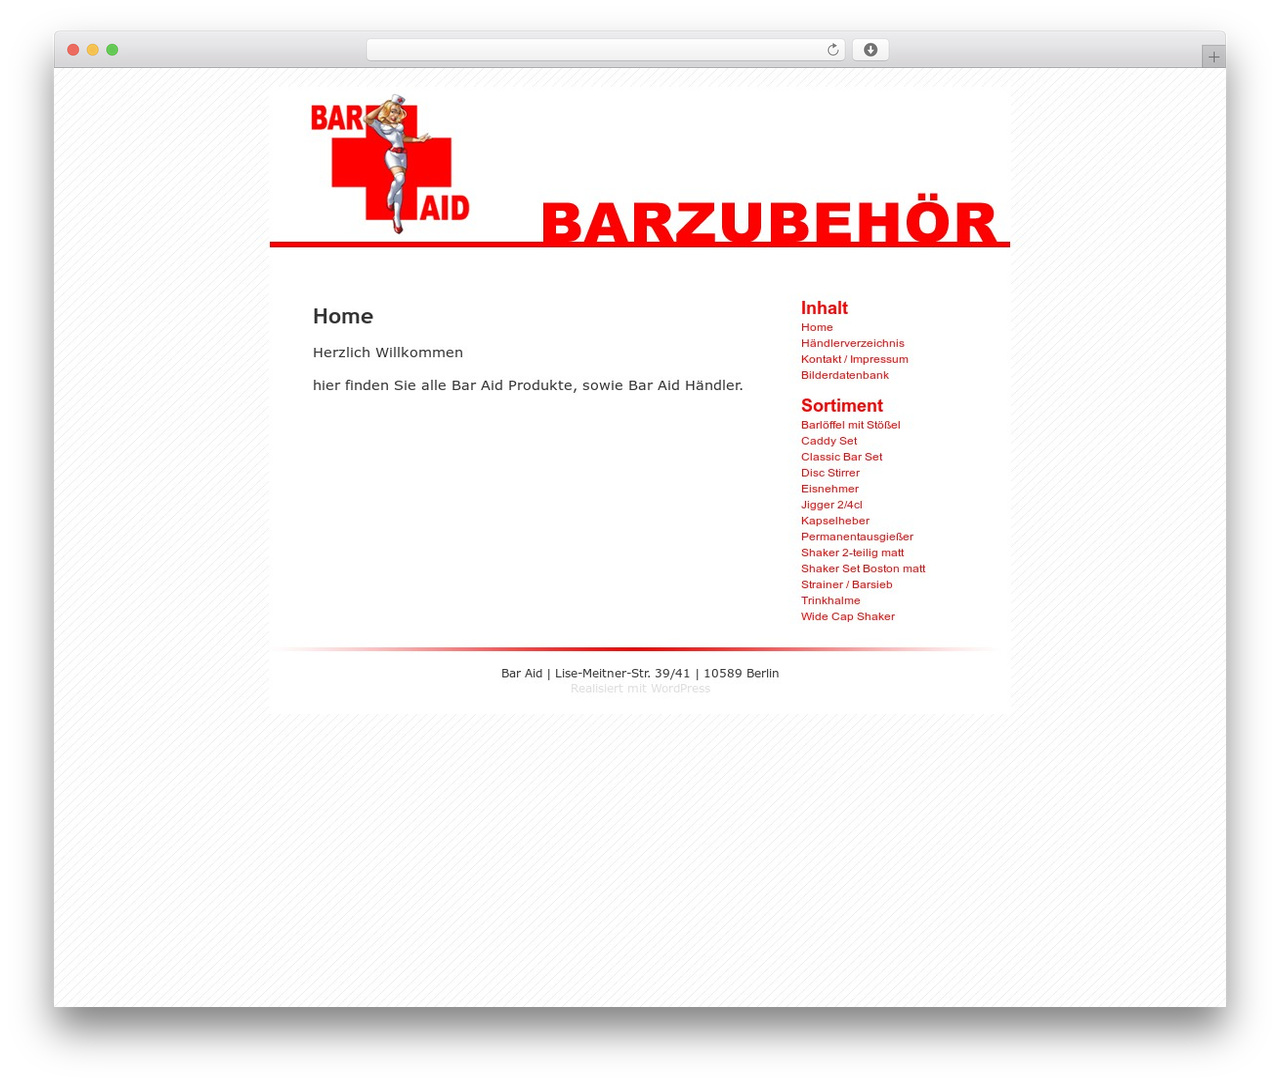 Barzubehör Hamburg Wordpress Default Wordpress Page Template By Michael Heilemann